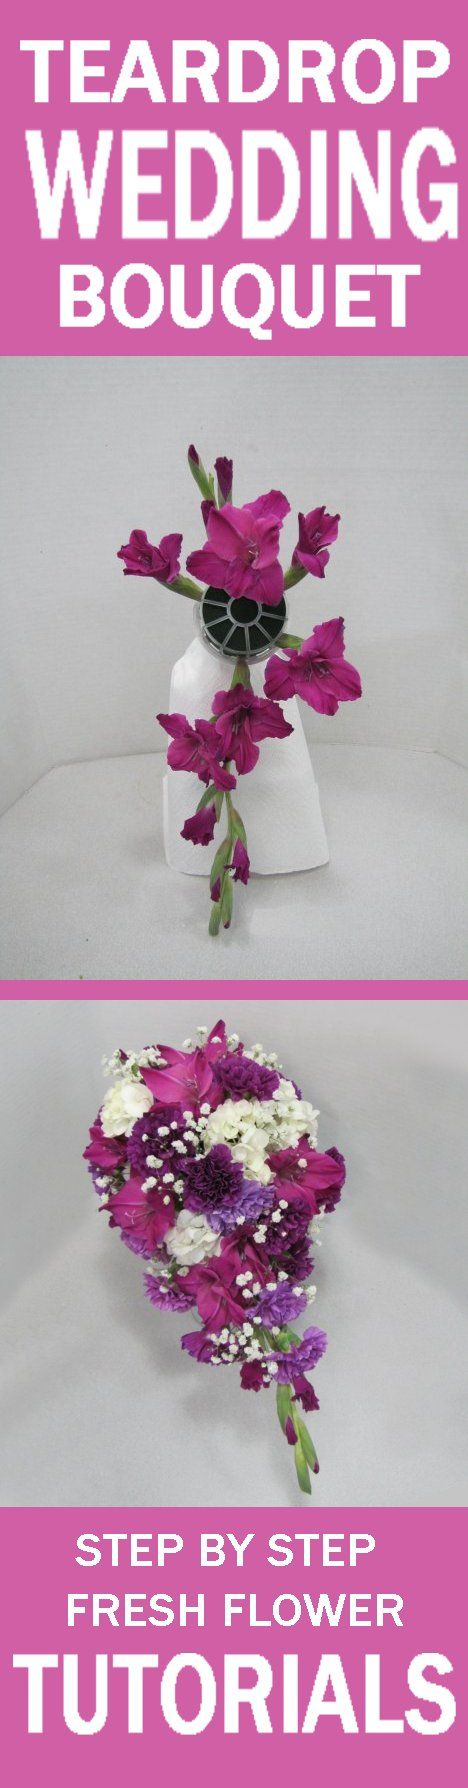 Purple Wedding Flower Bouquets - Easy Free Fresh Flower Tutorials Learn how to make bridal bouquets, wedding corsages, groom boutonnieres, church decorations and reception table centerpieces.  Buy wholesale flowers and discount florist supplies.